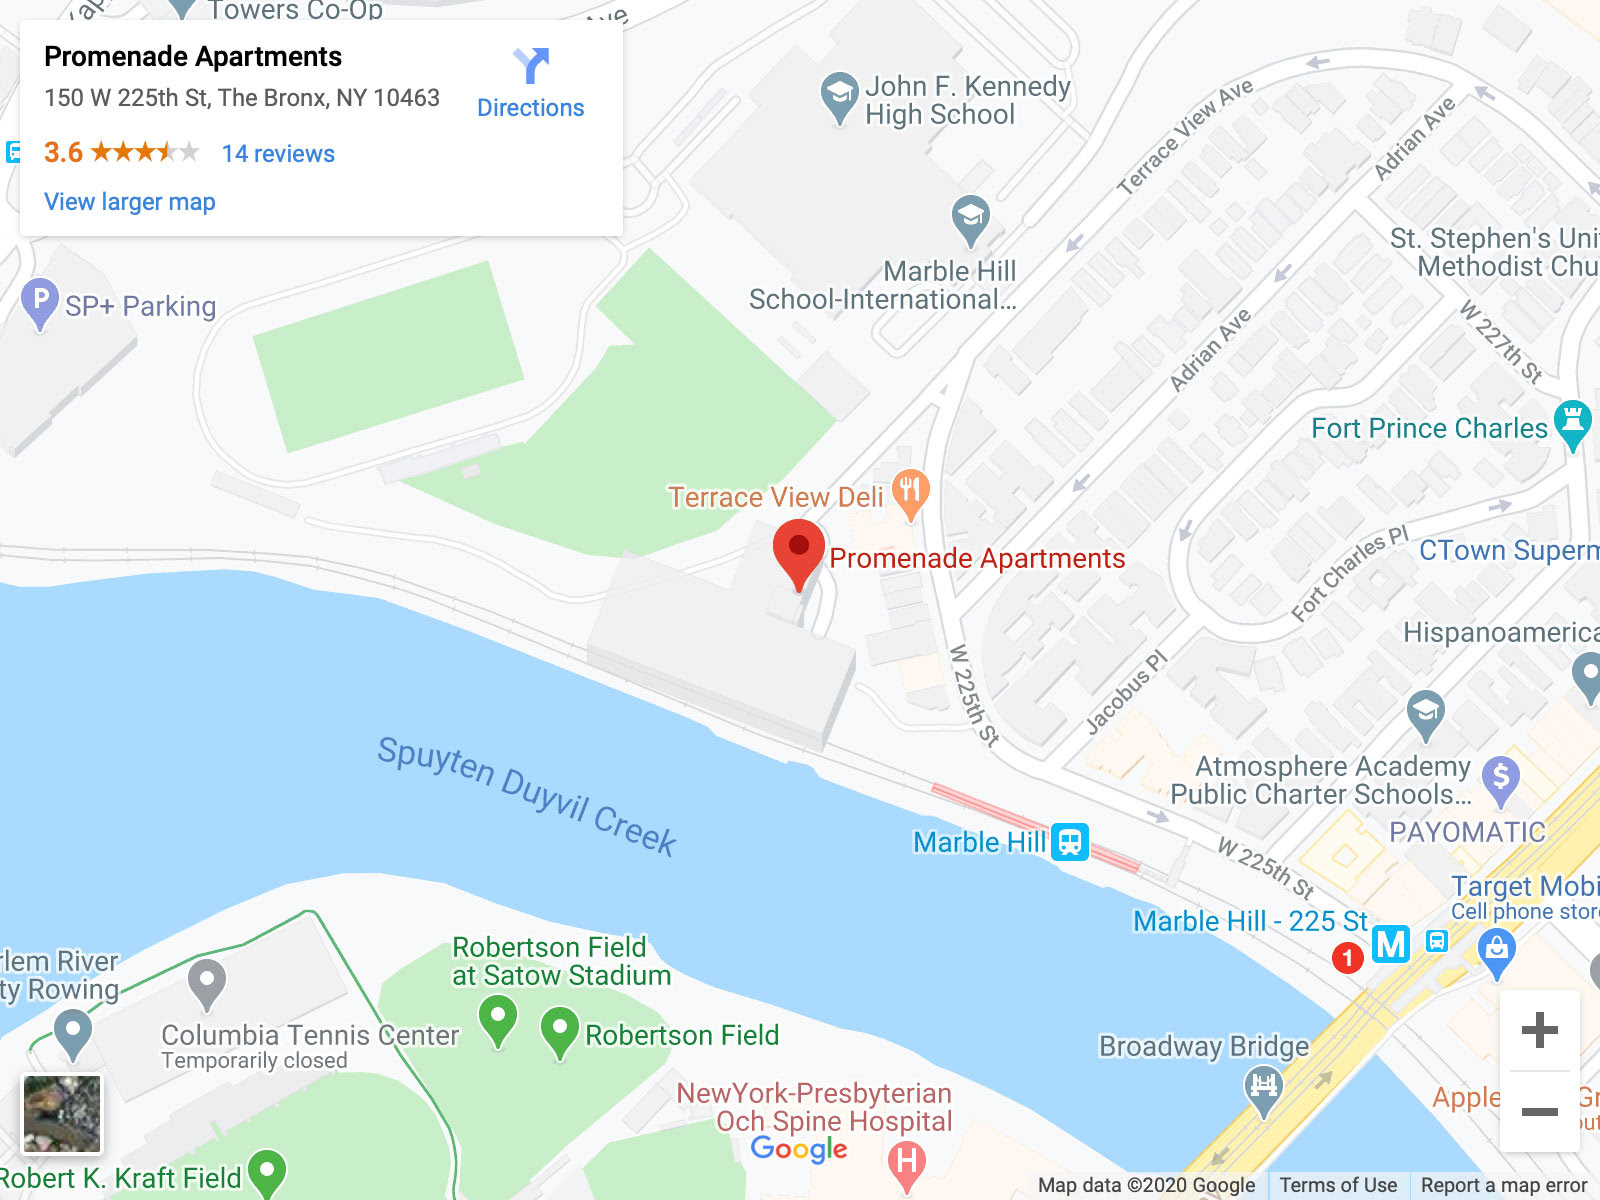 A map showing the location of Promenade Apartments in the Bronx